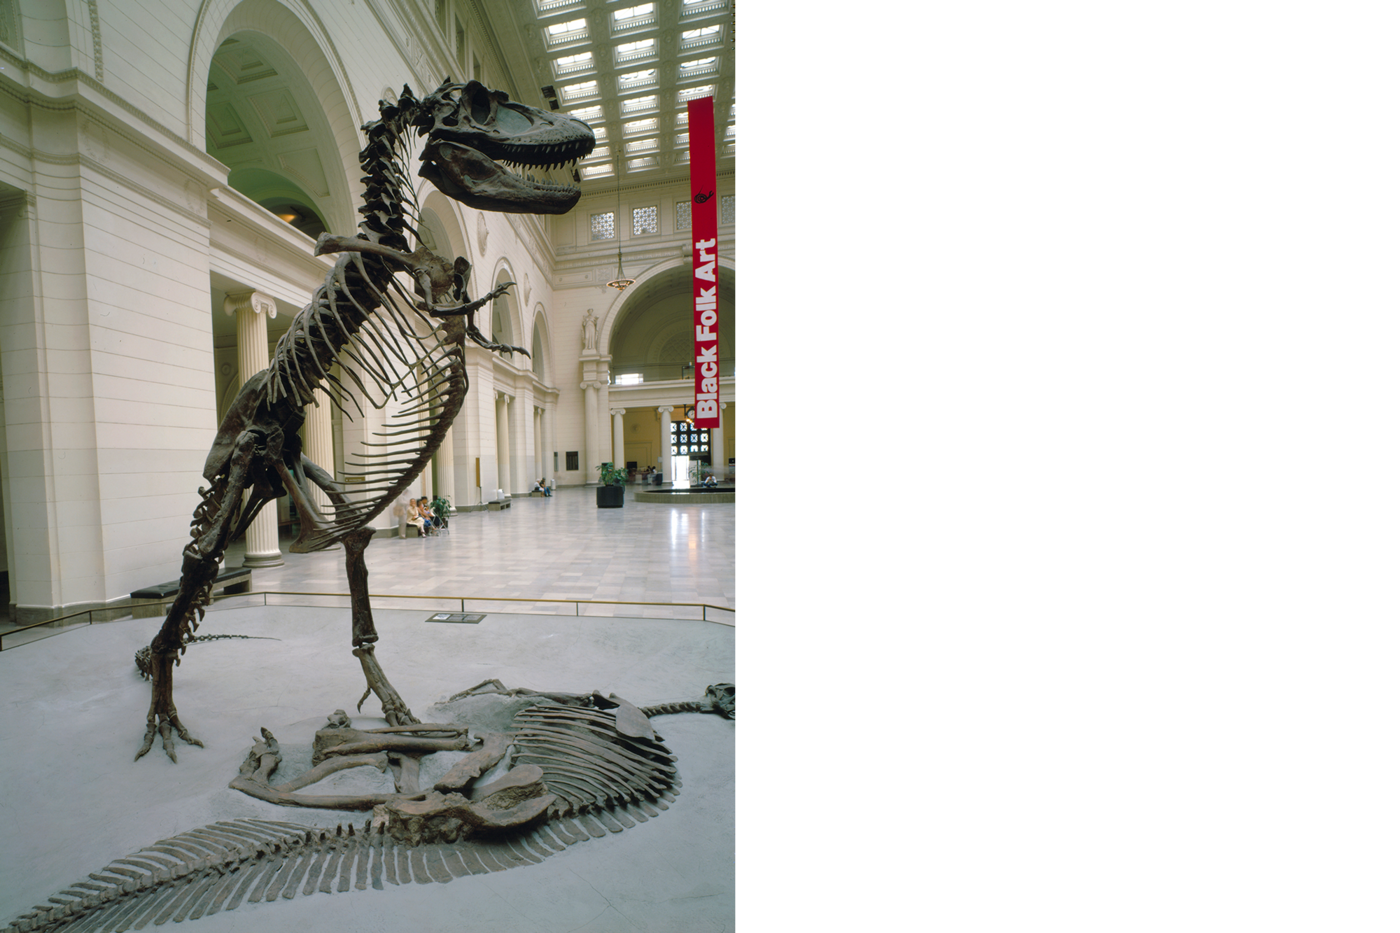 George, a Daspletosaurus dinosaur skeleton, stands upright in Stanley Field Hall. Another dinosaur skeleton is embedded in the base in front of the Daspletosaurus.